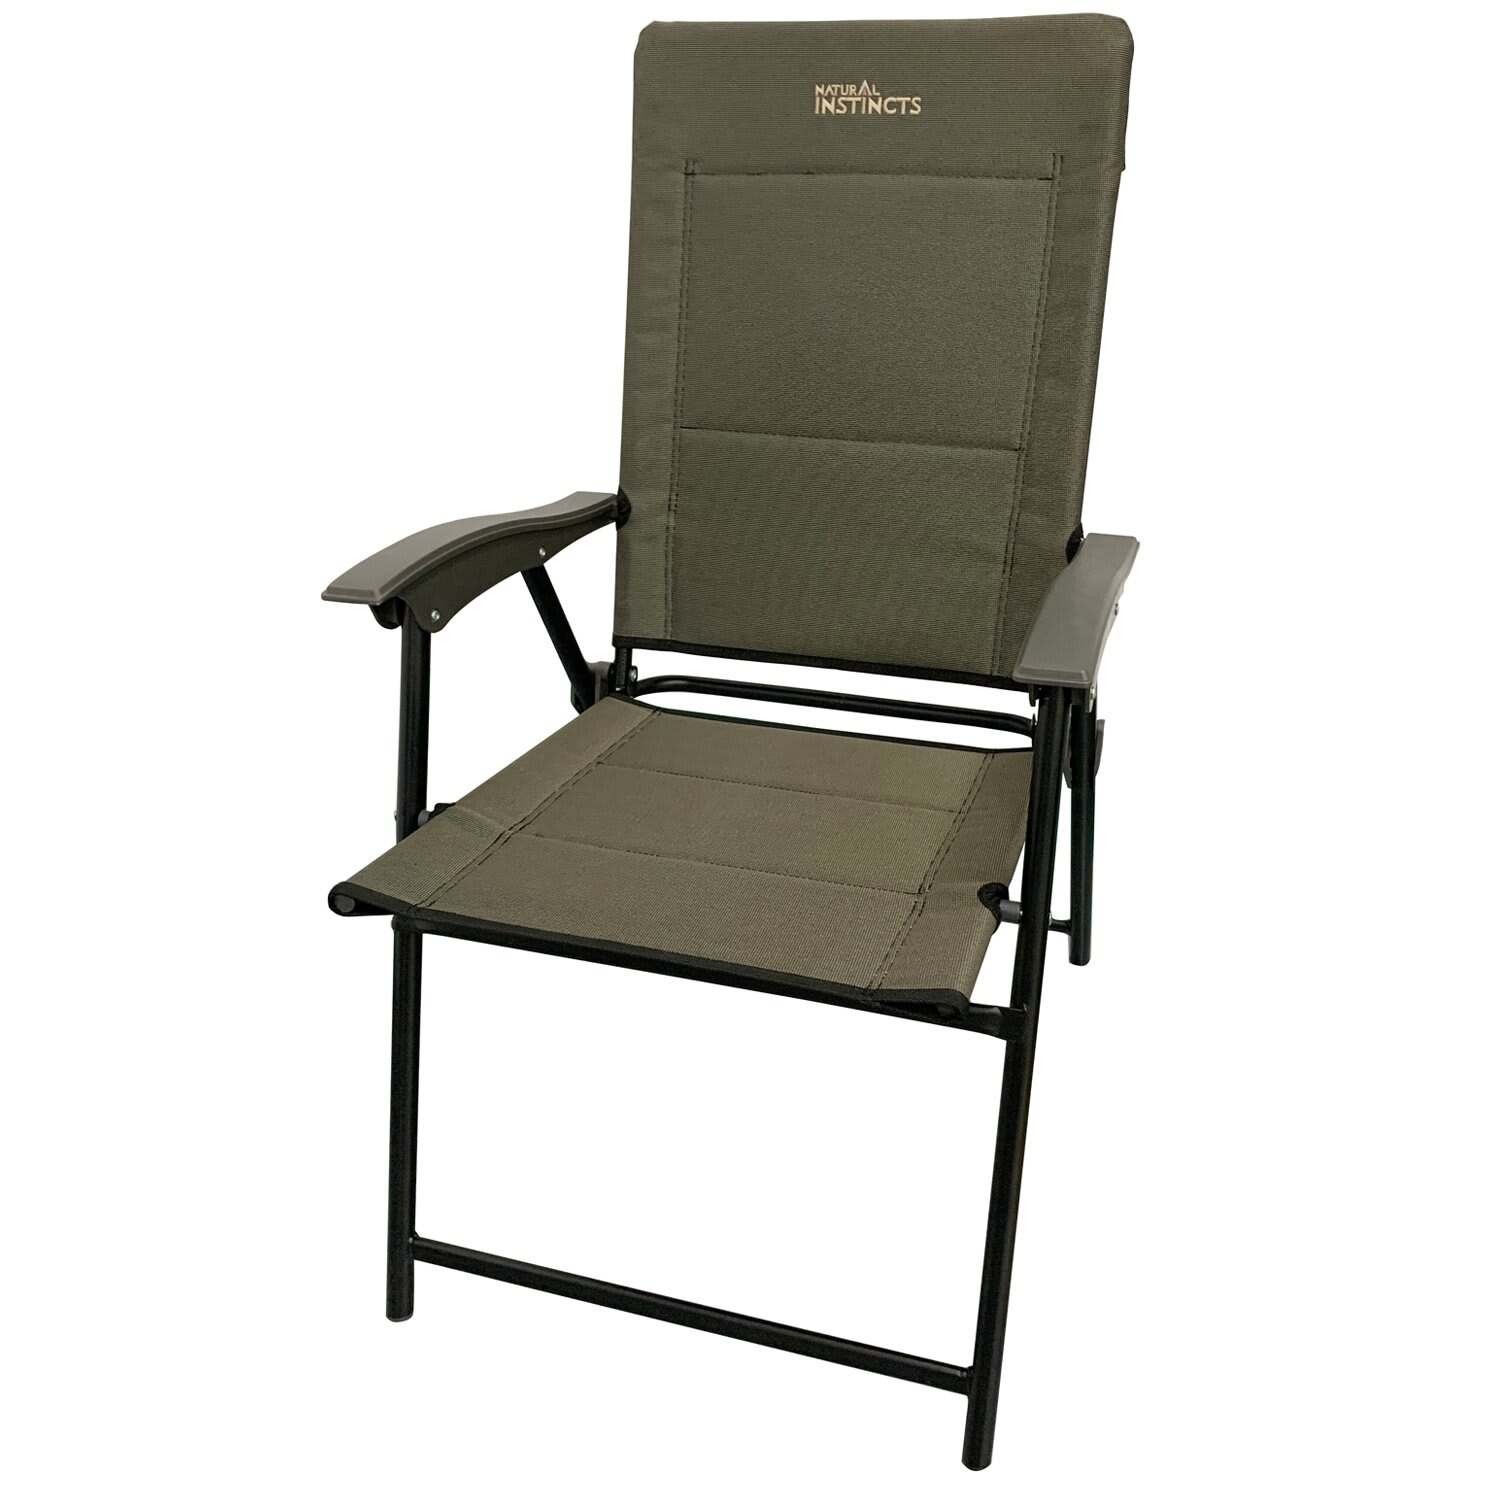 Natural Instincts Patio Chair